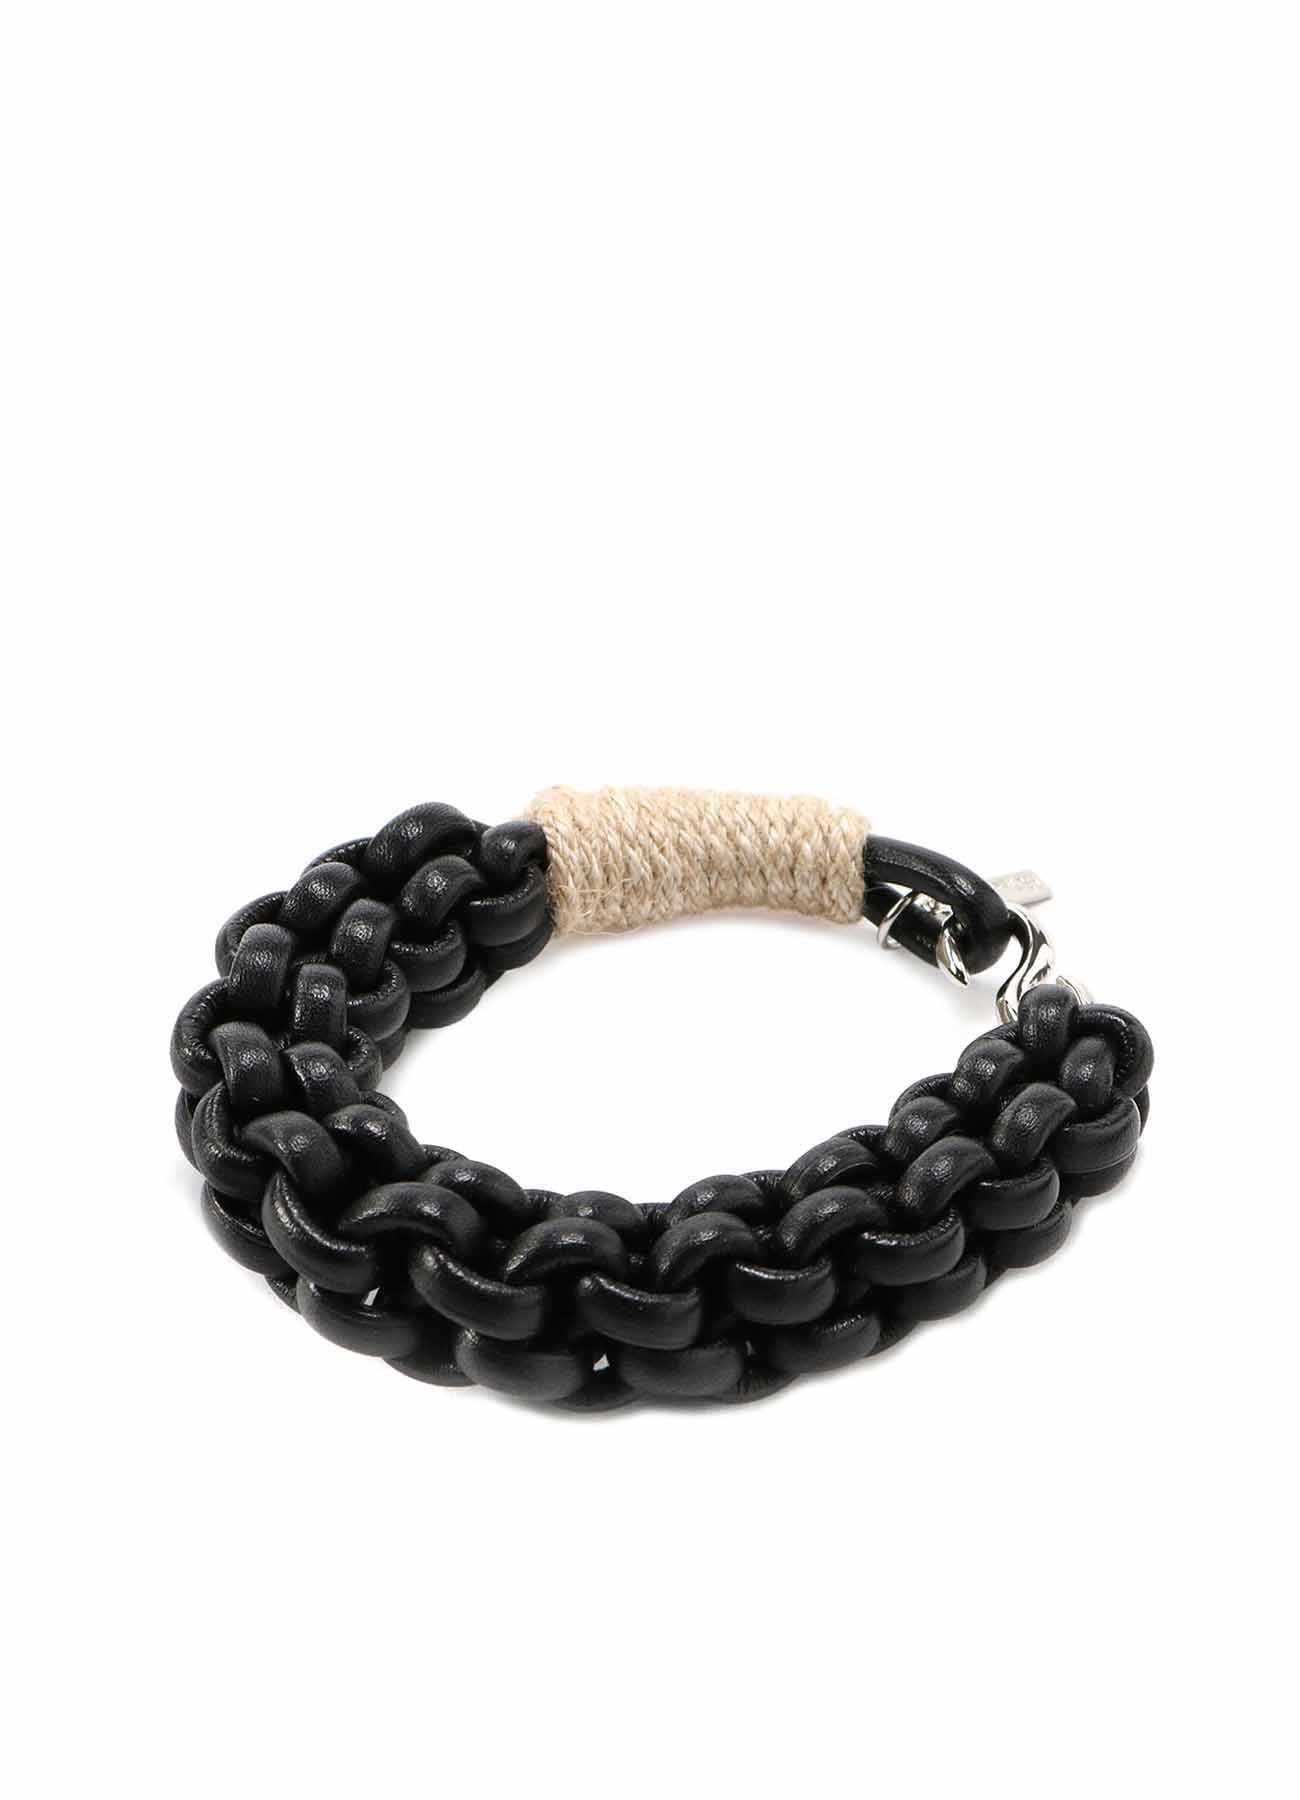 LEATHER CODE LEATHER CORD BRACELET